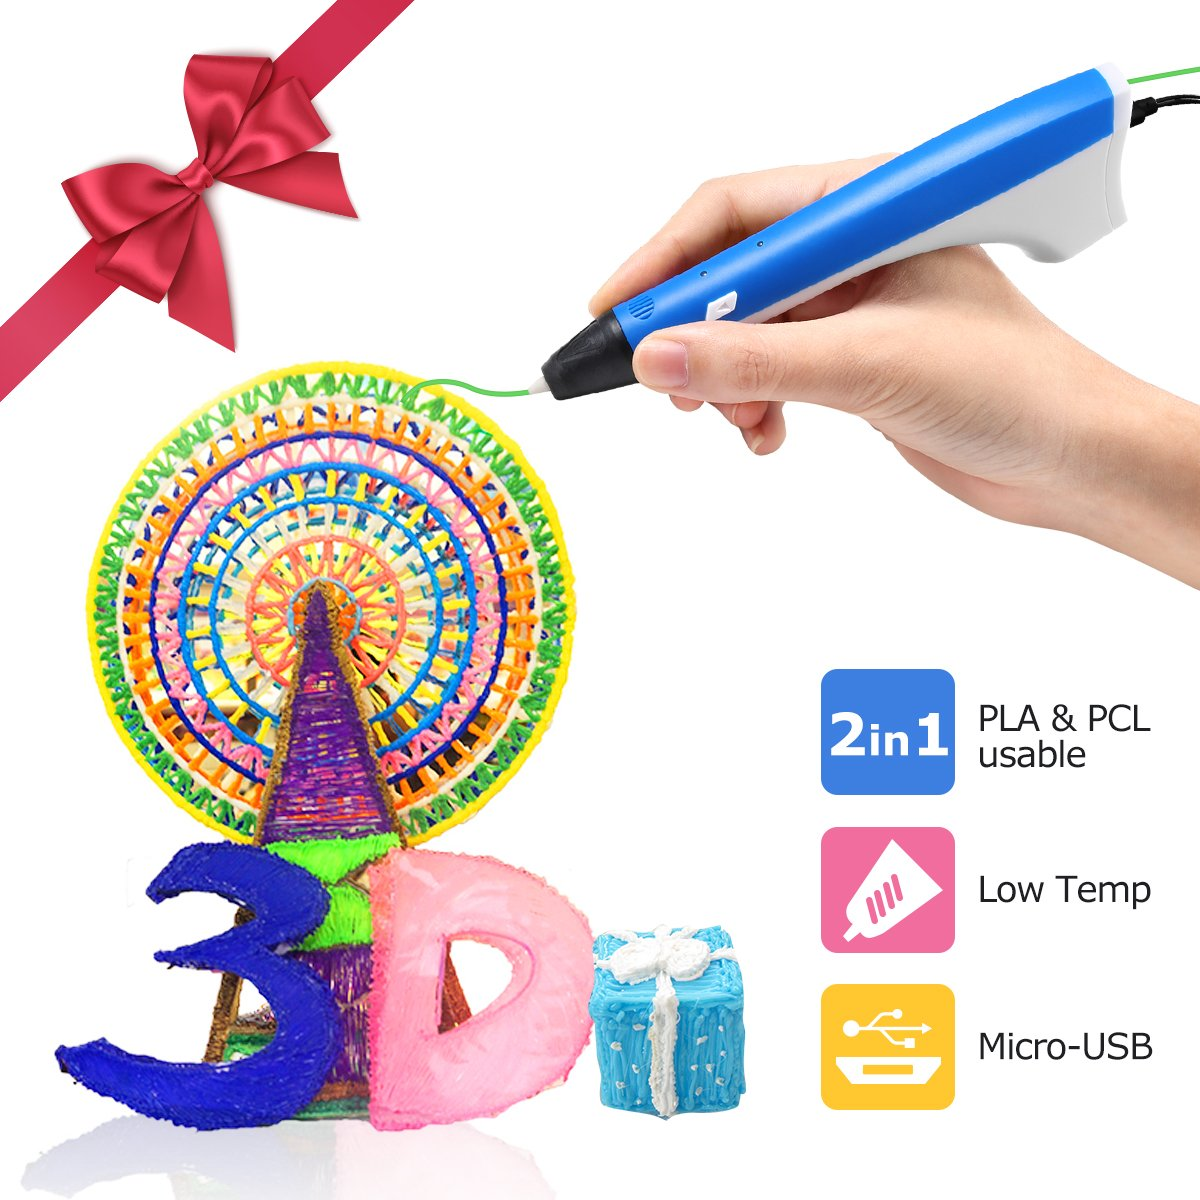 Ailink 3D Printing Pen, Upgrade Intelligent 3D Pen with 1.75mm PLA/PCL Filament, One Button Operation No Burn No Toxic No Clog Gifts for Boys Girls (Blue) GLOBAL